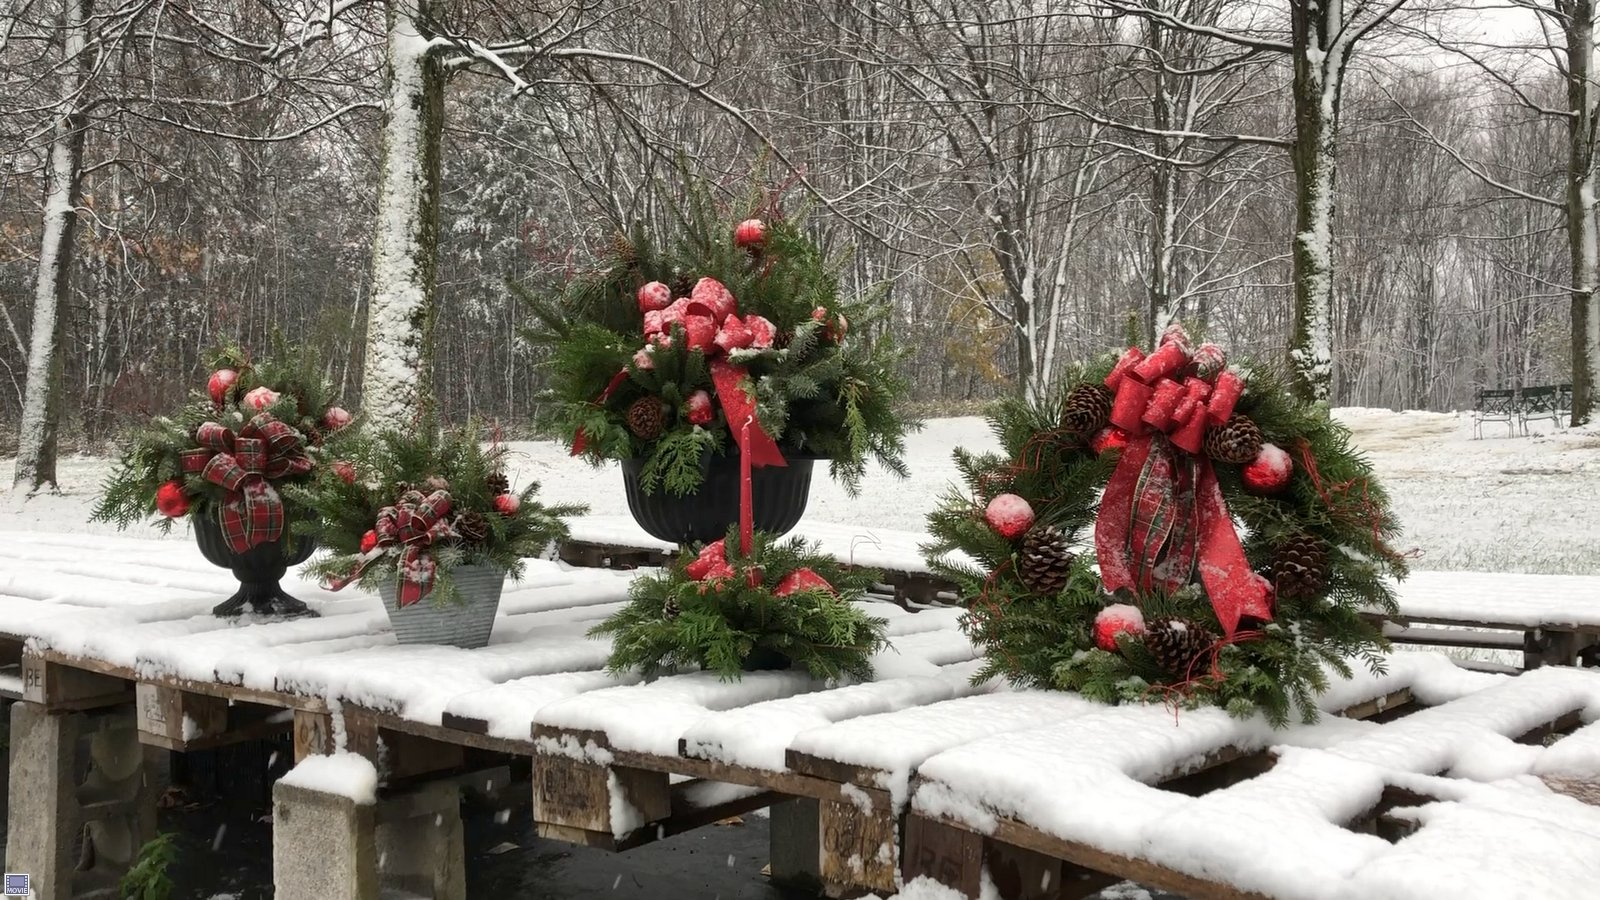 From Left to Right: Small Urn, Decorative Tin, Large Urn, Centerpiece & Wreath